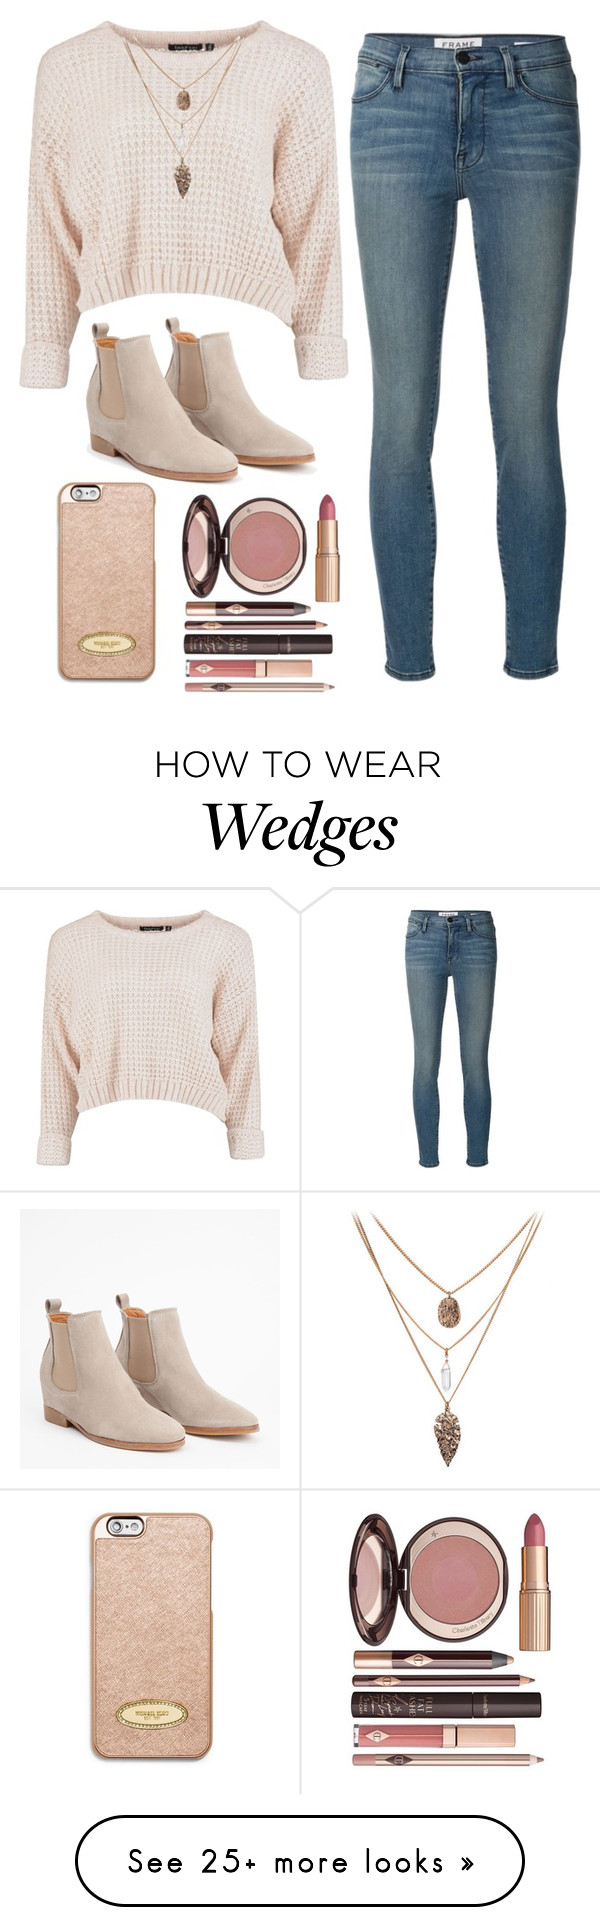 """Untitled #272"" by cbkindt on Polyvore featuring moda, Frame Denim, MICHAEL Michael Kors e Charlotte Tilbury"